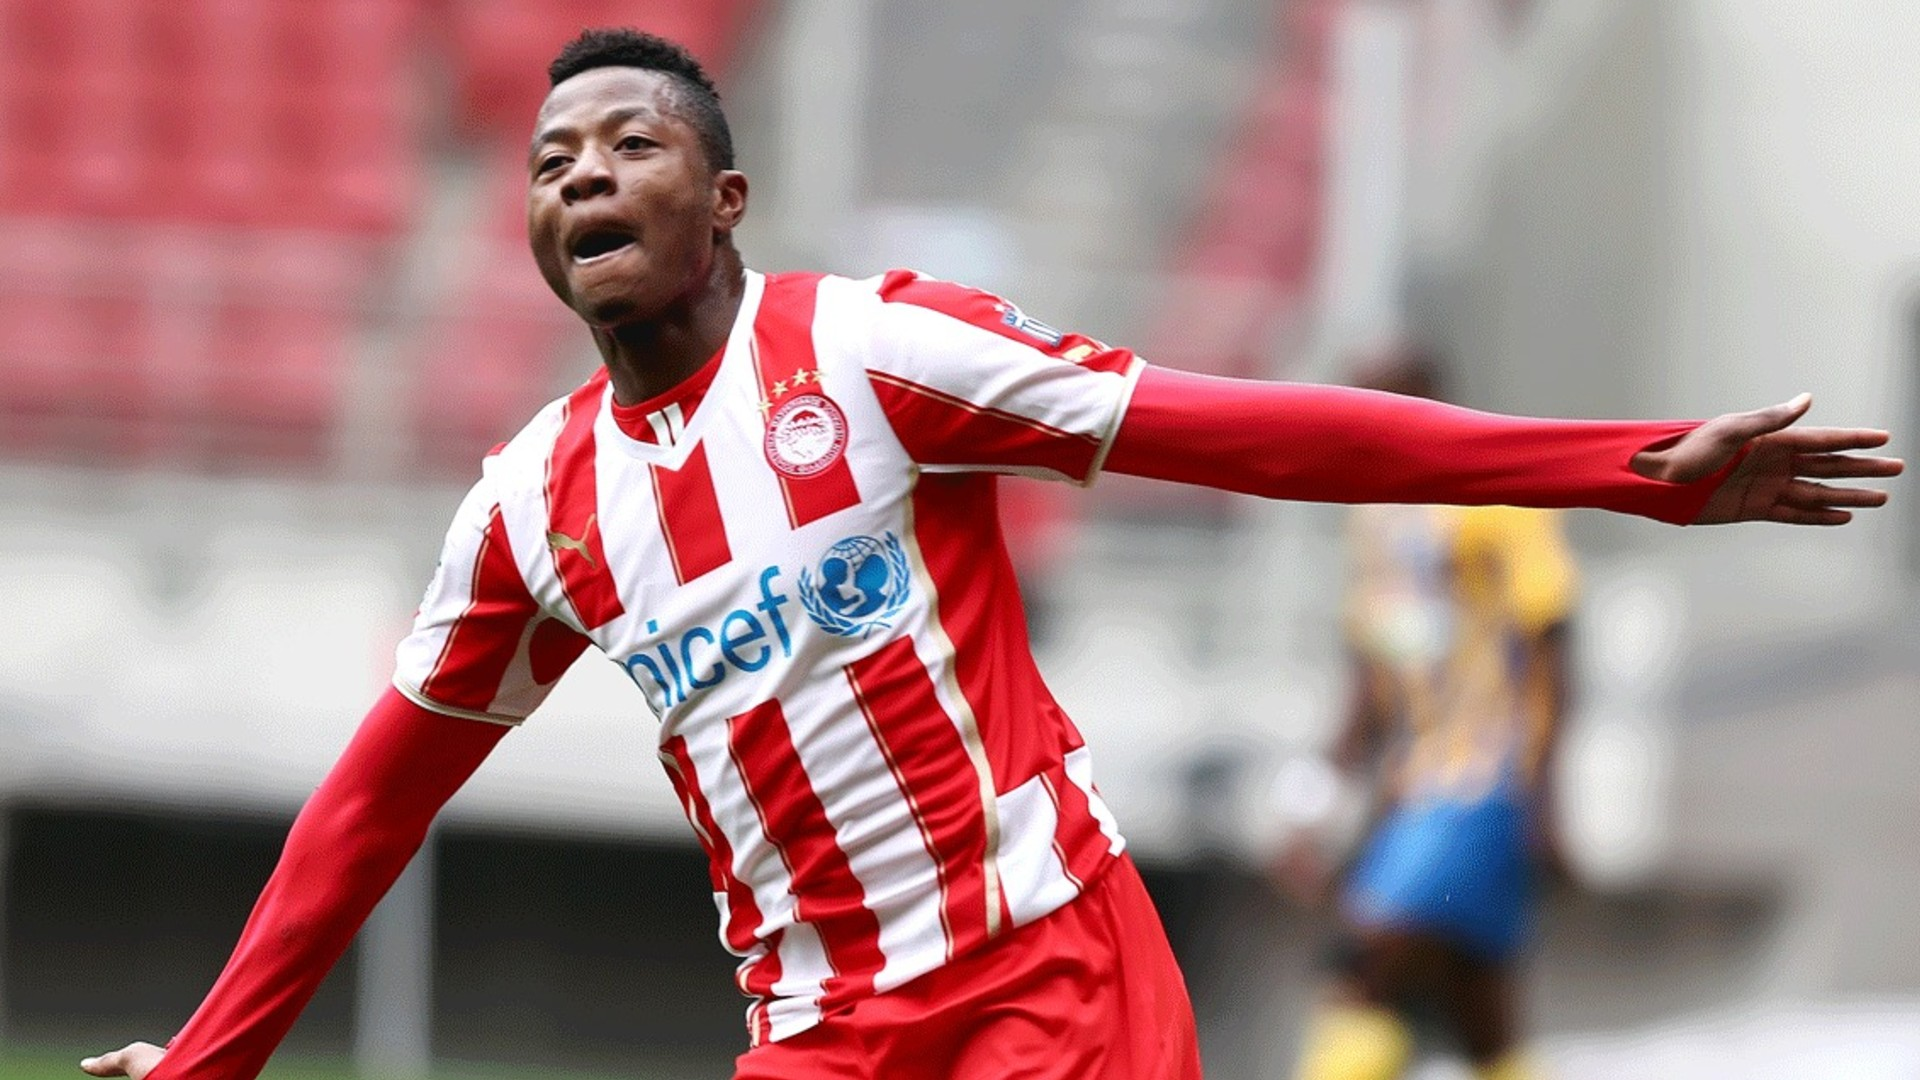 Olaitan doubts Manchester United match caused his collapse at Olympiakos